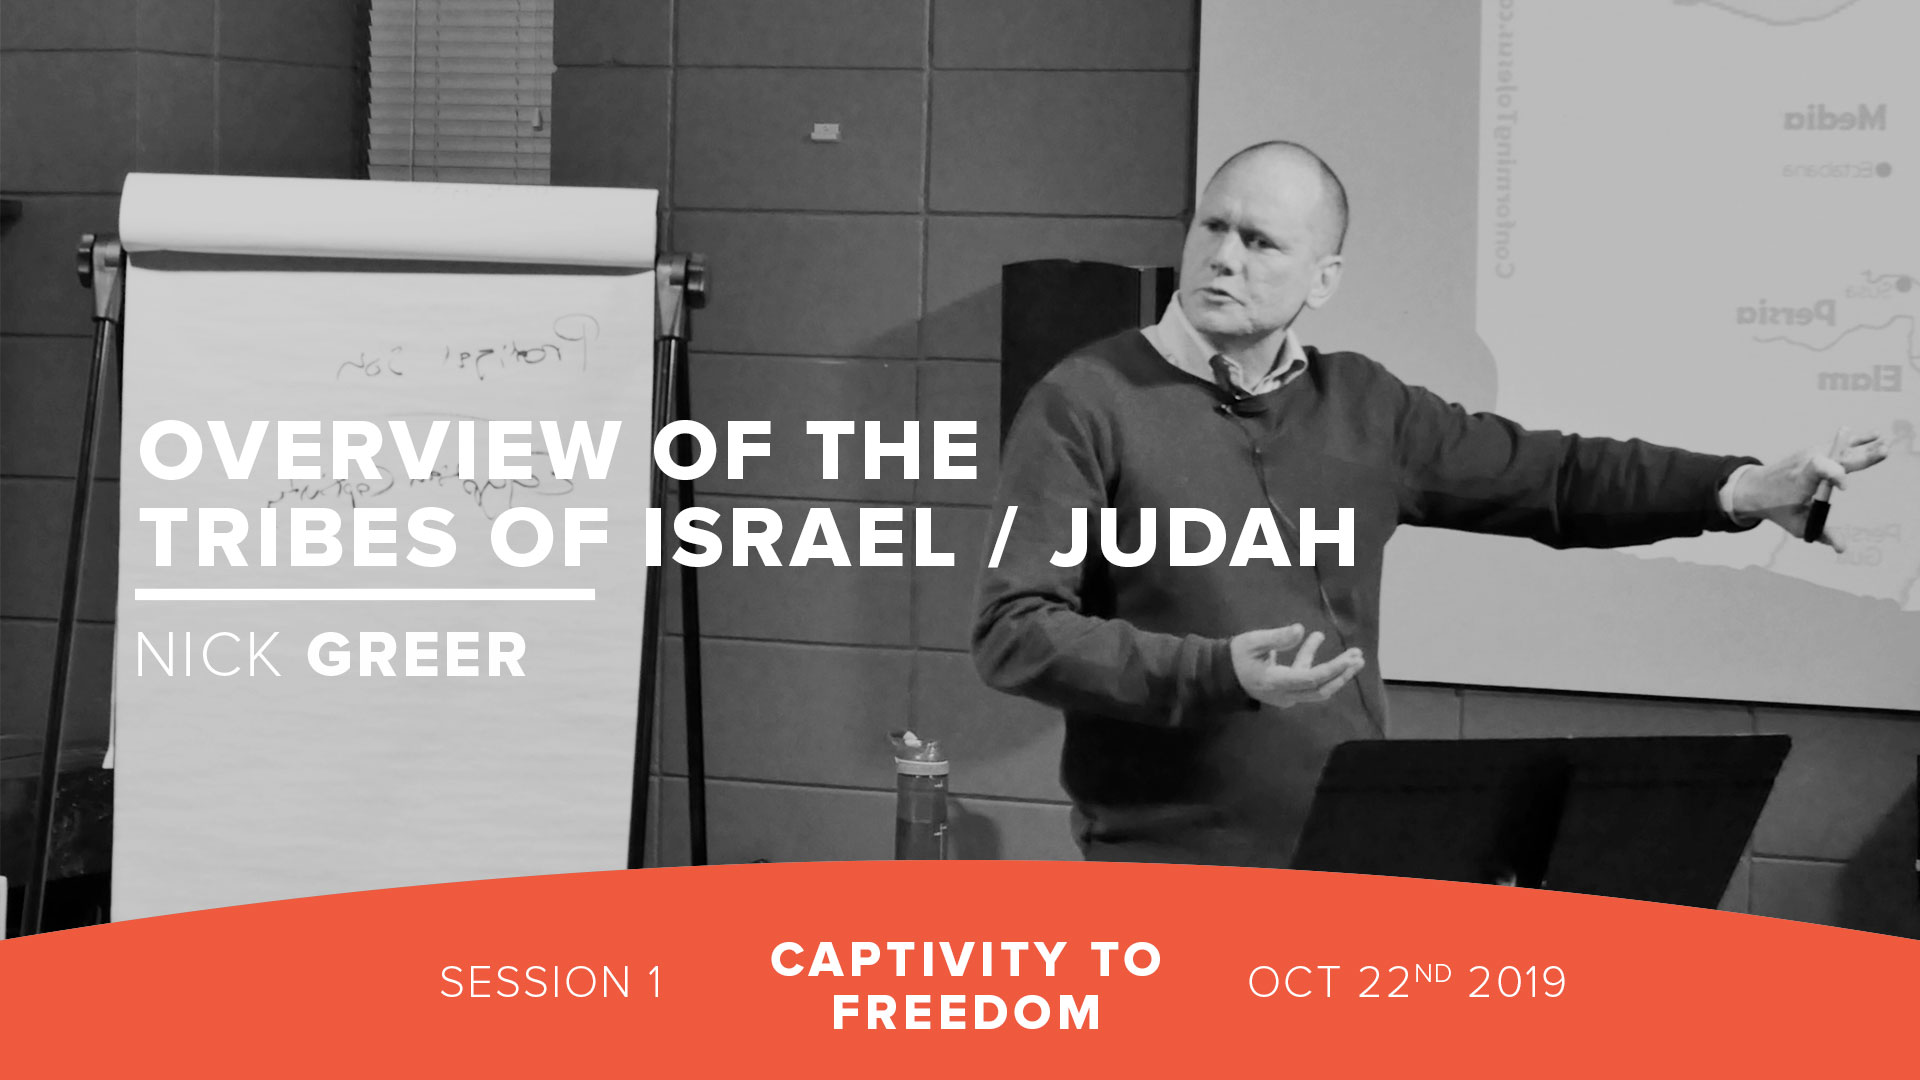 Session 1: Overview of the Tribes of Israel / Judah